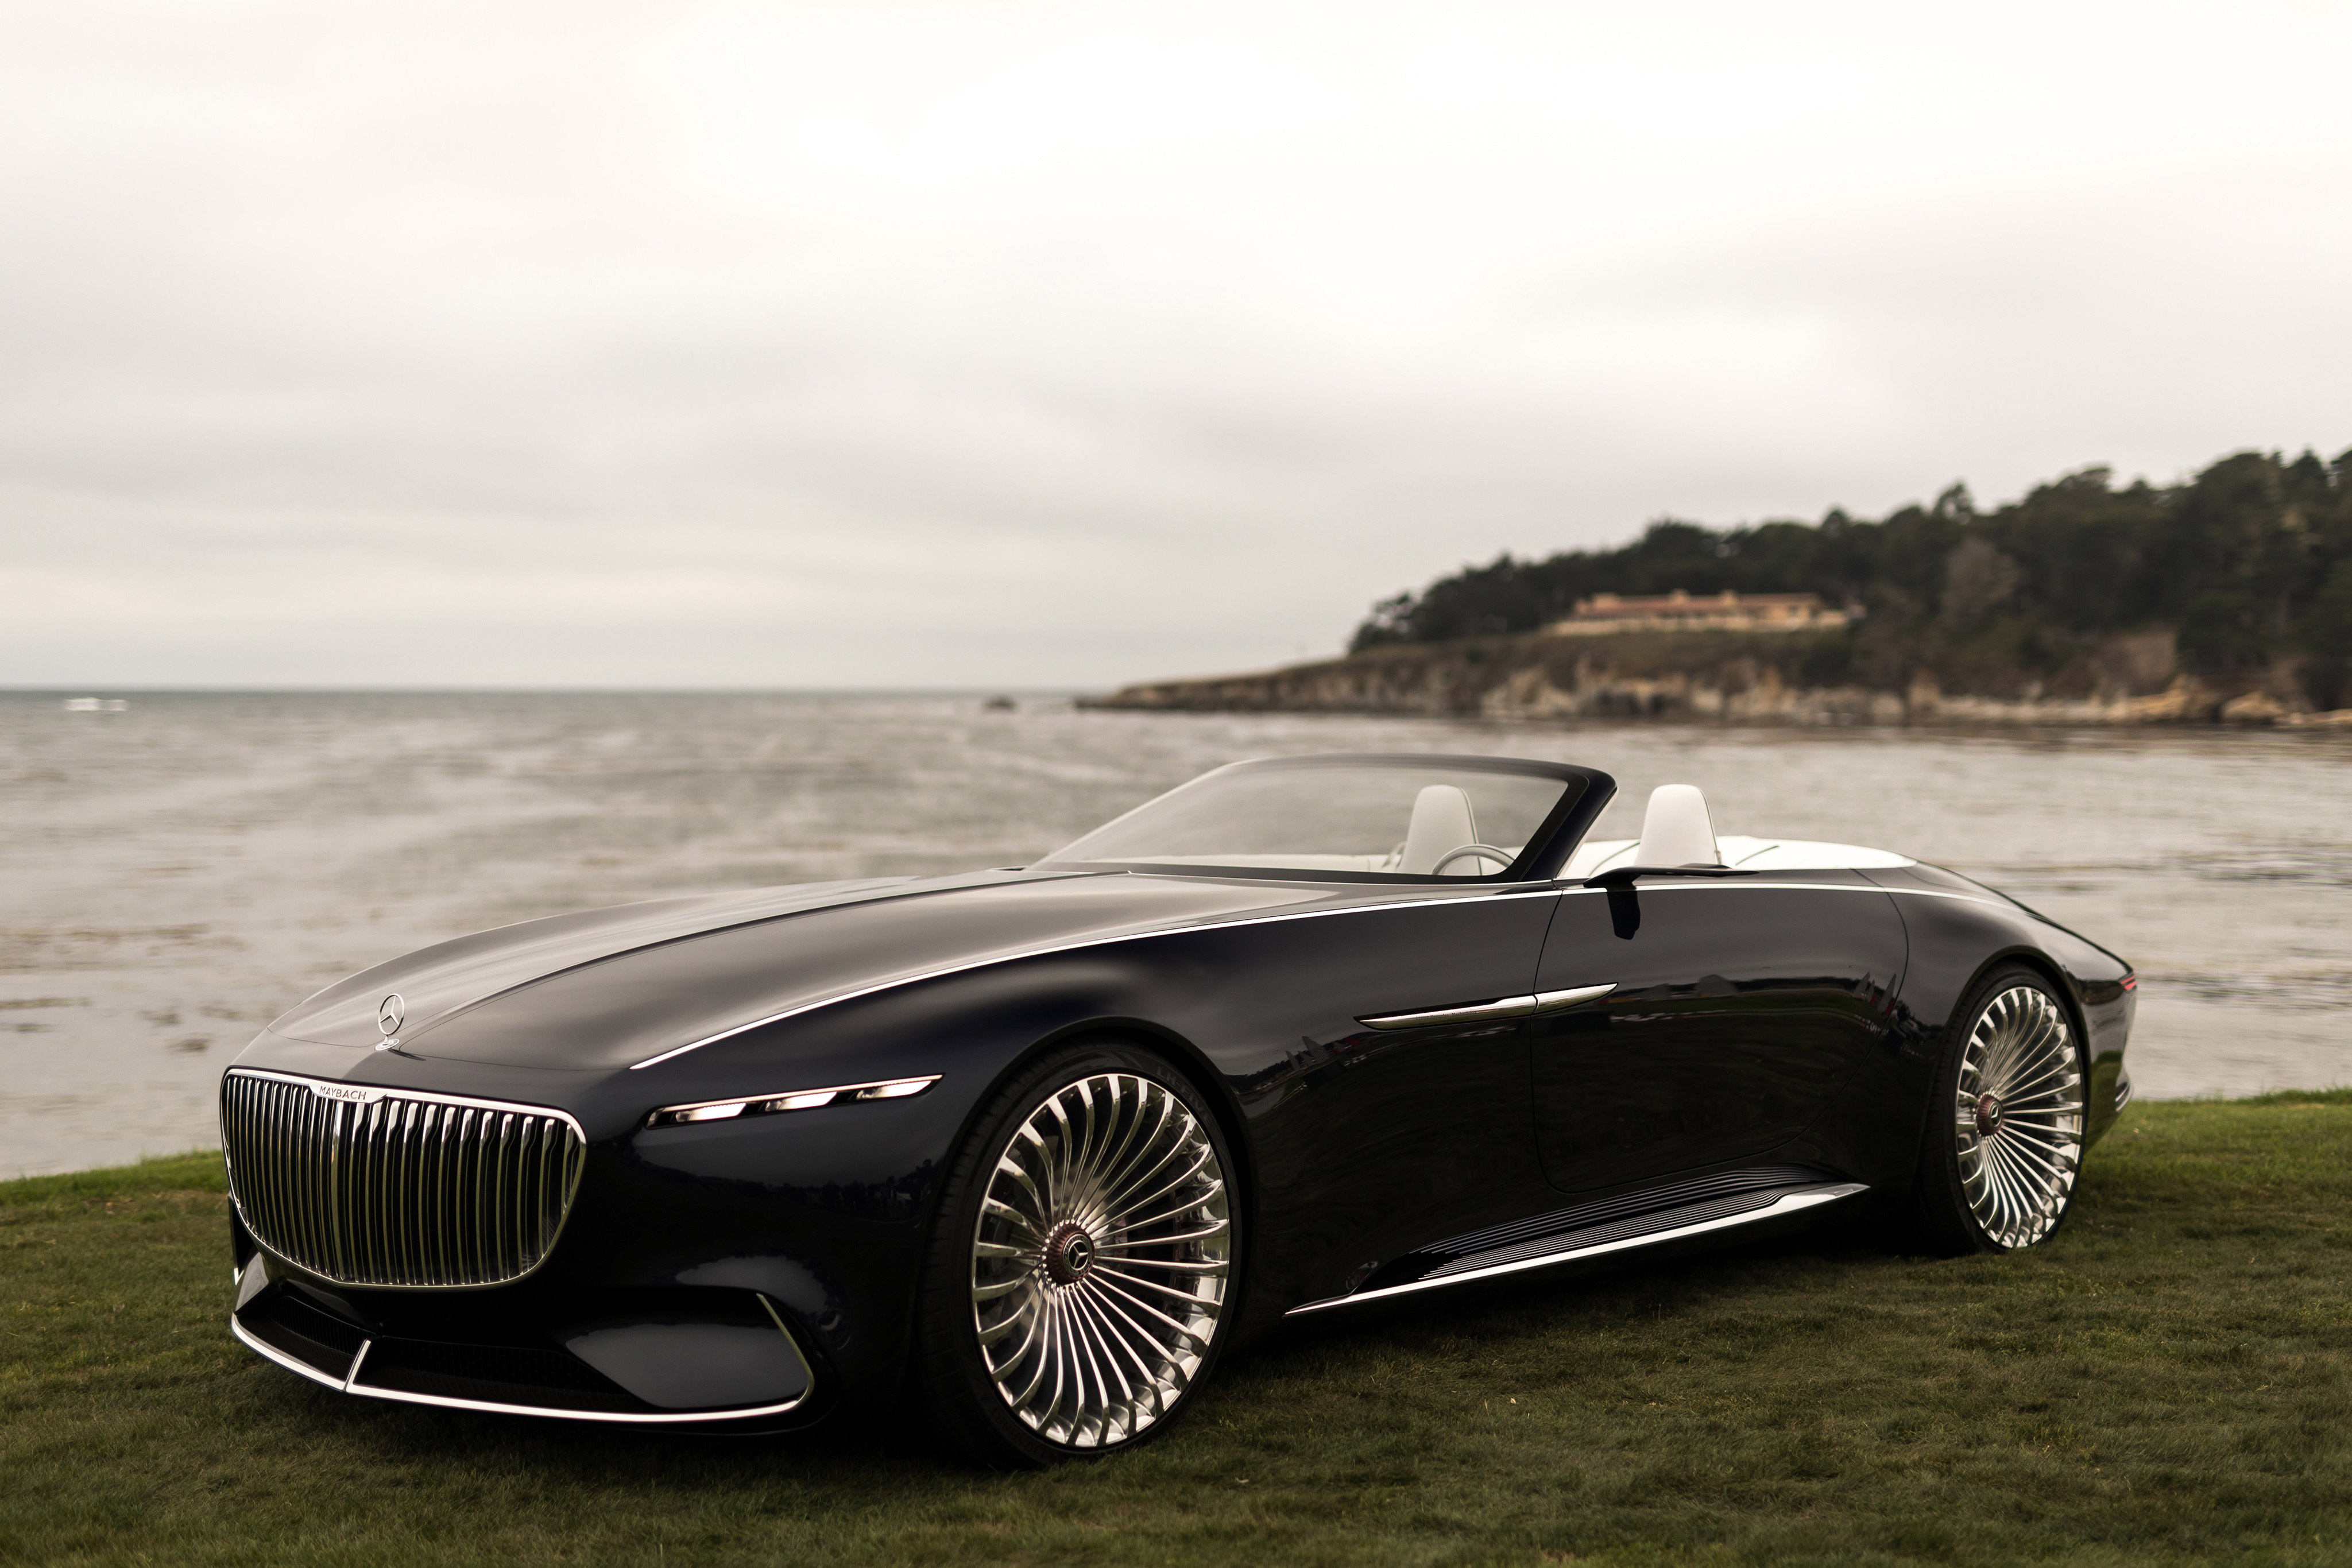 Vision Mercedes Maybach 6 Cabriolet 2017 4k, HD Cars, 4k Wallpapers ...